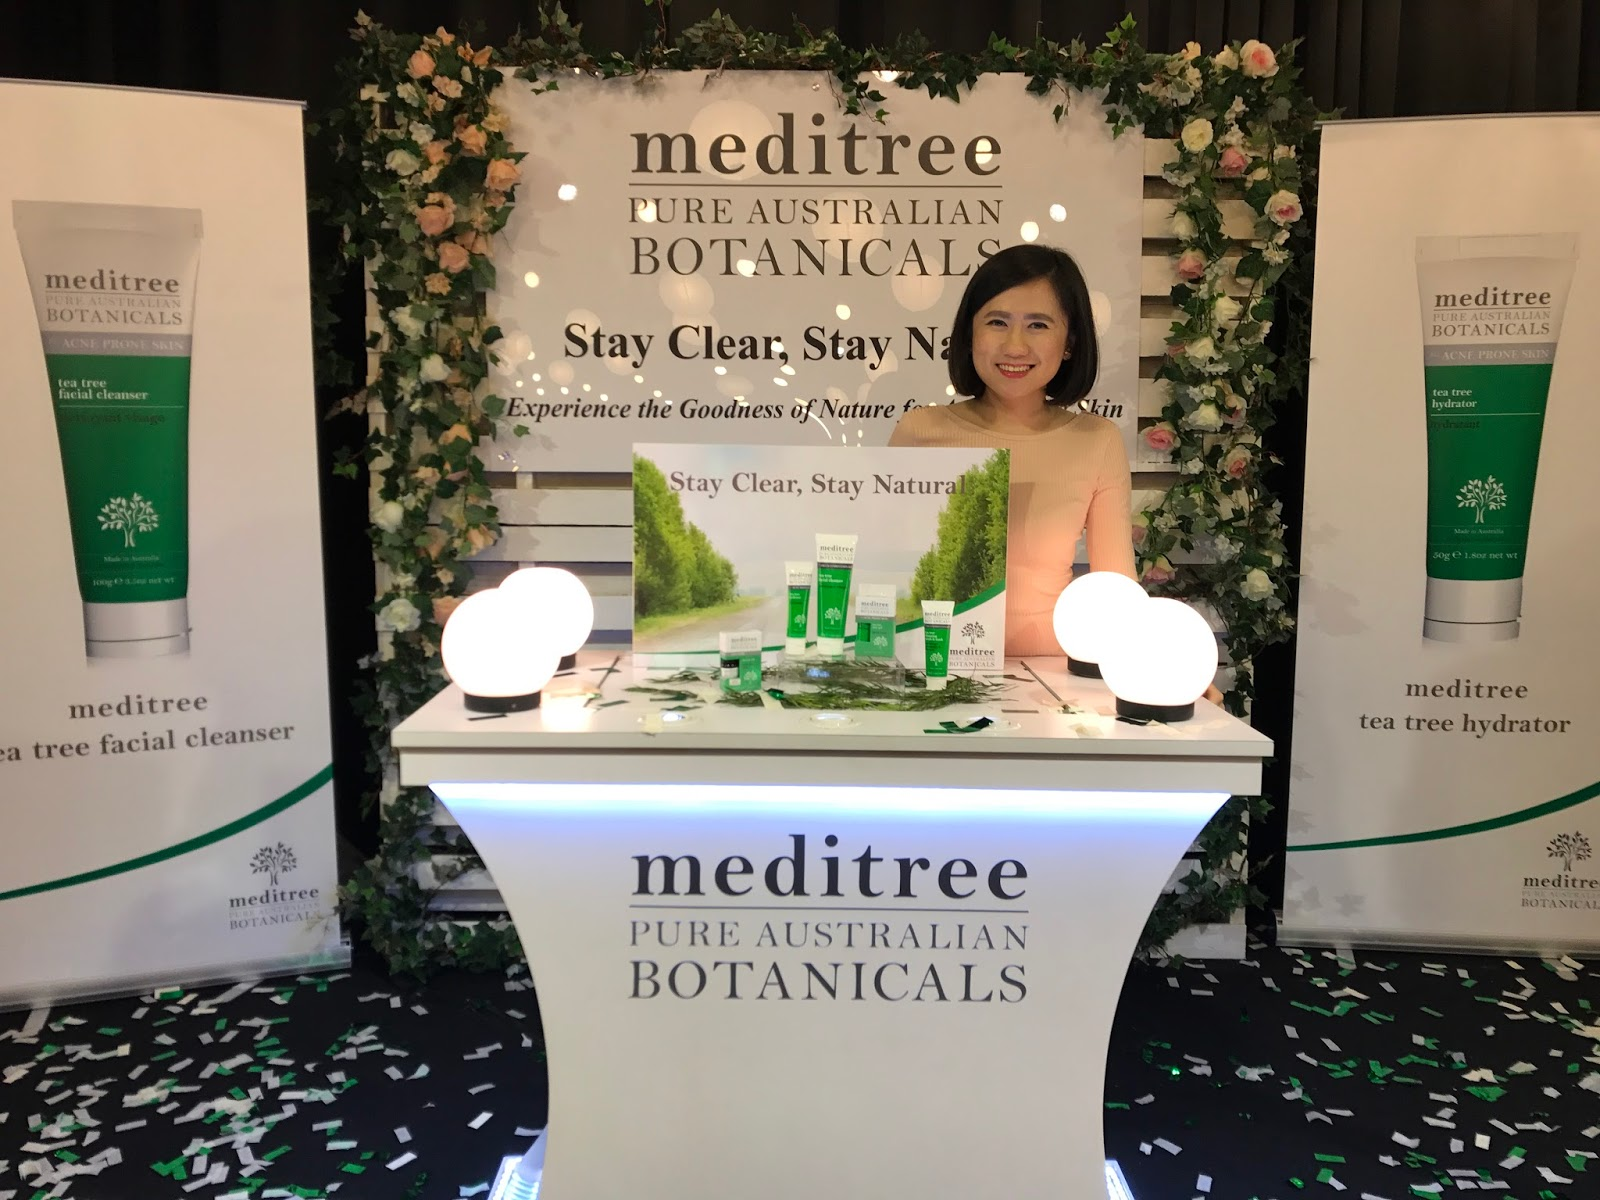 DKSH launches Meditree Tea Tree to help skin stay clear in a natural way